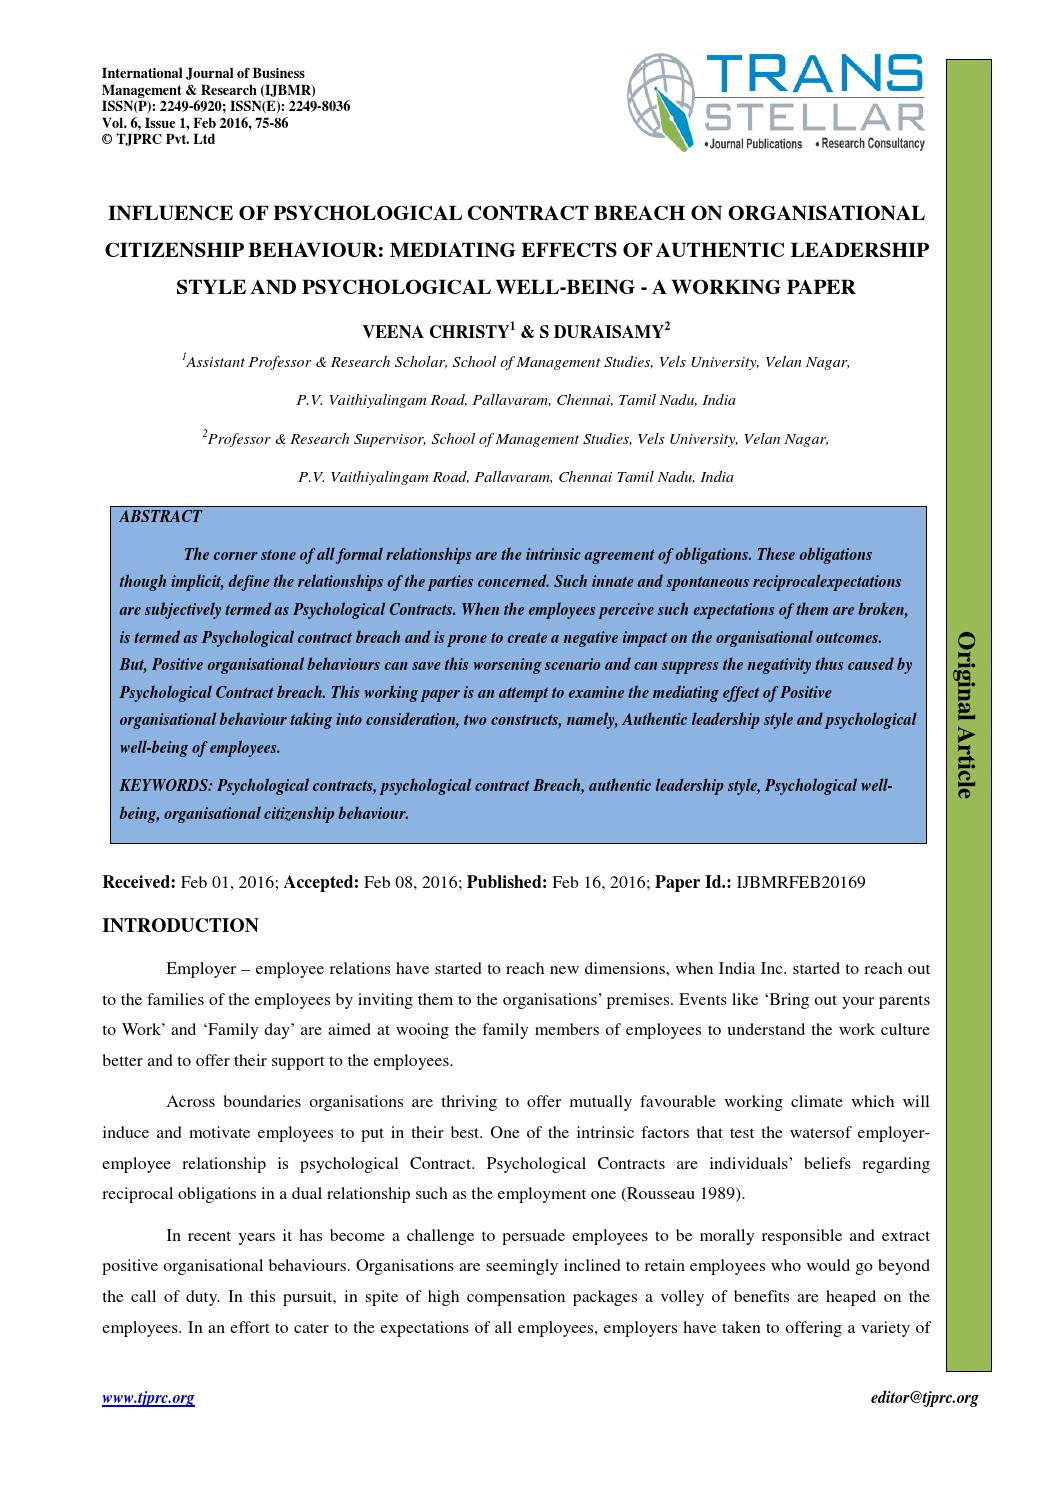 psychological contract research paper Ty - jour t1 - the psychological contract: a critical review' au - cullinane,niall au - dundon,tony py - 2006 y1 - 2006 n2 - literature on the psychological.